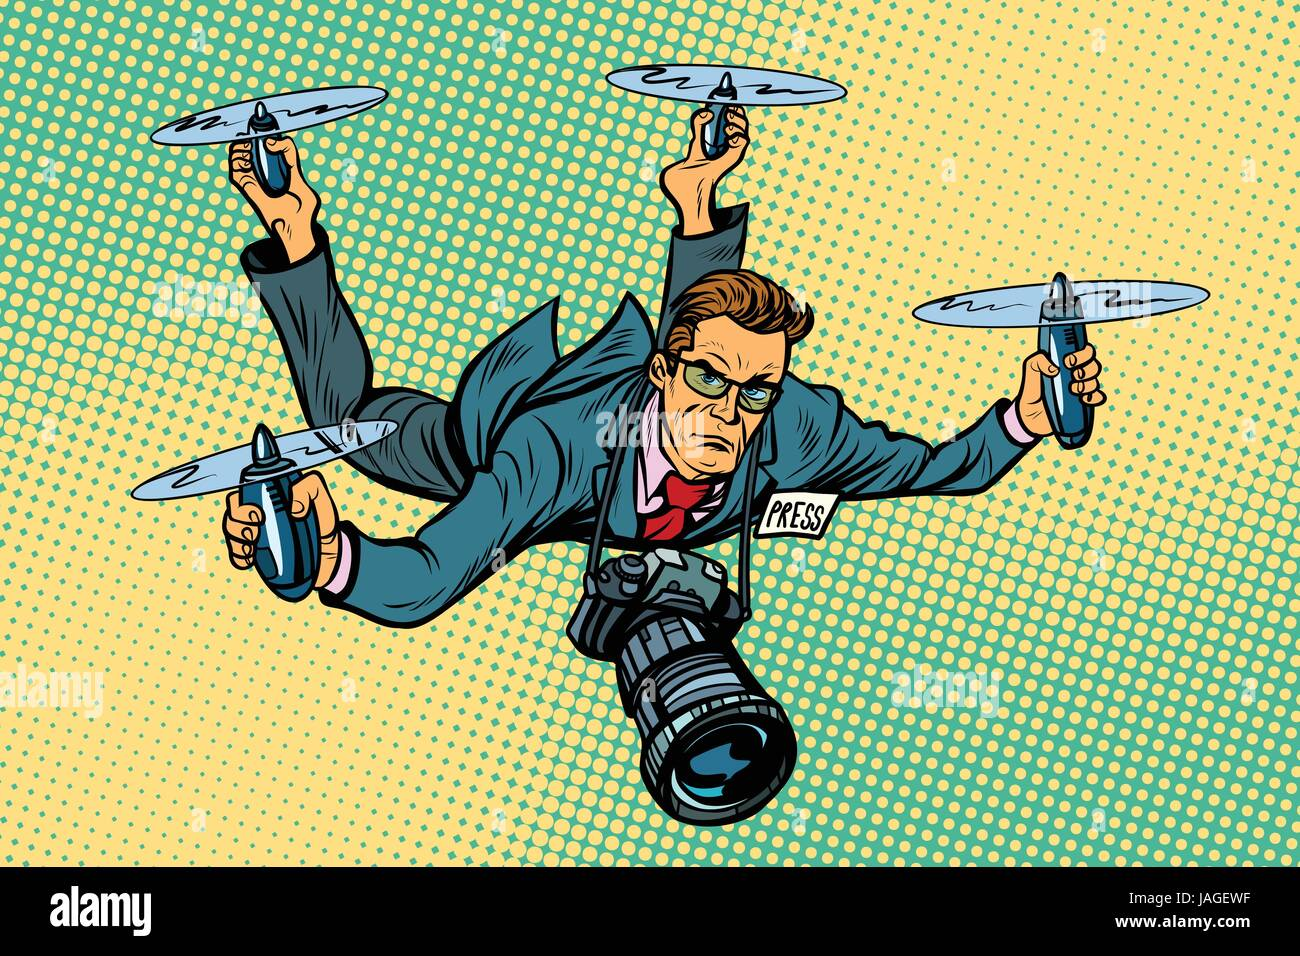 Paparazzi Photographer Stock Vector Images Alamy